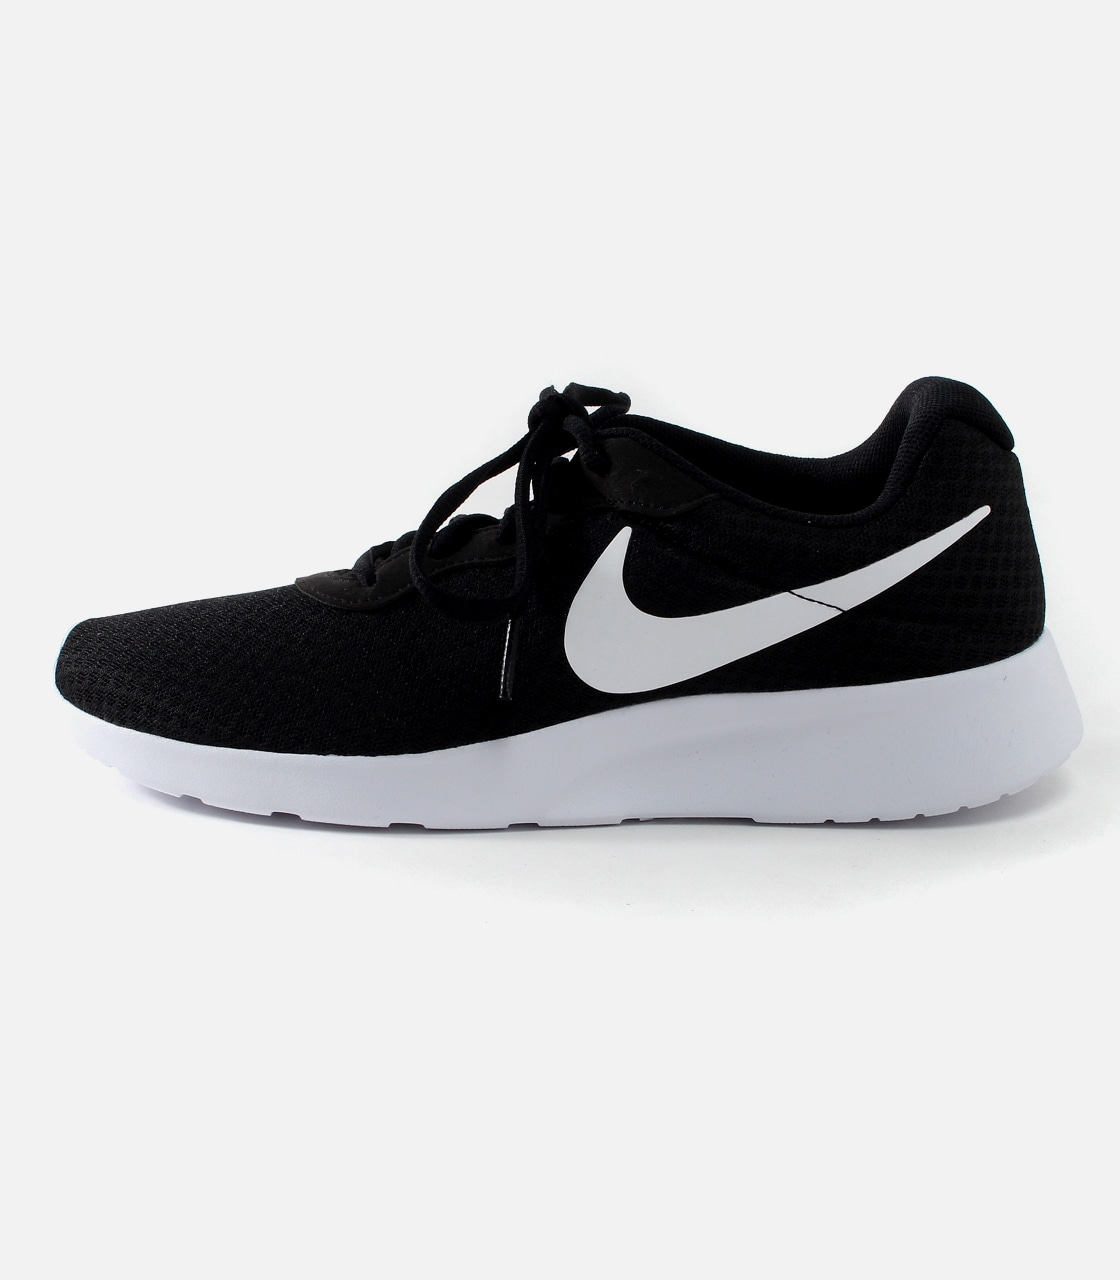 【AZUL BY MOUSSY】NIKE TANJUN 詳細画像 BLK 2